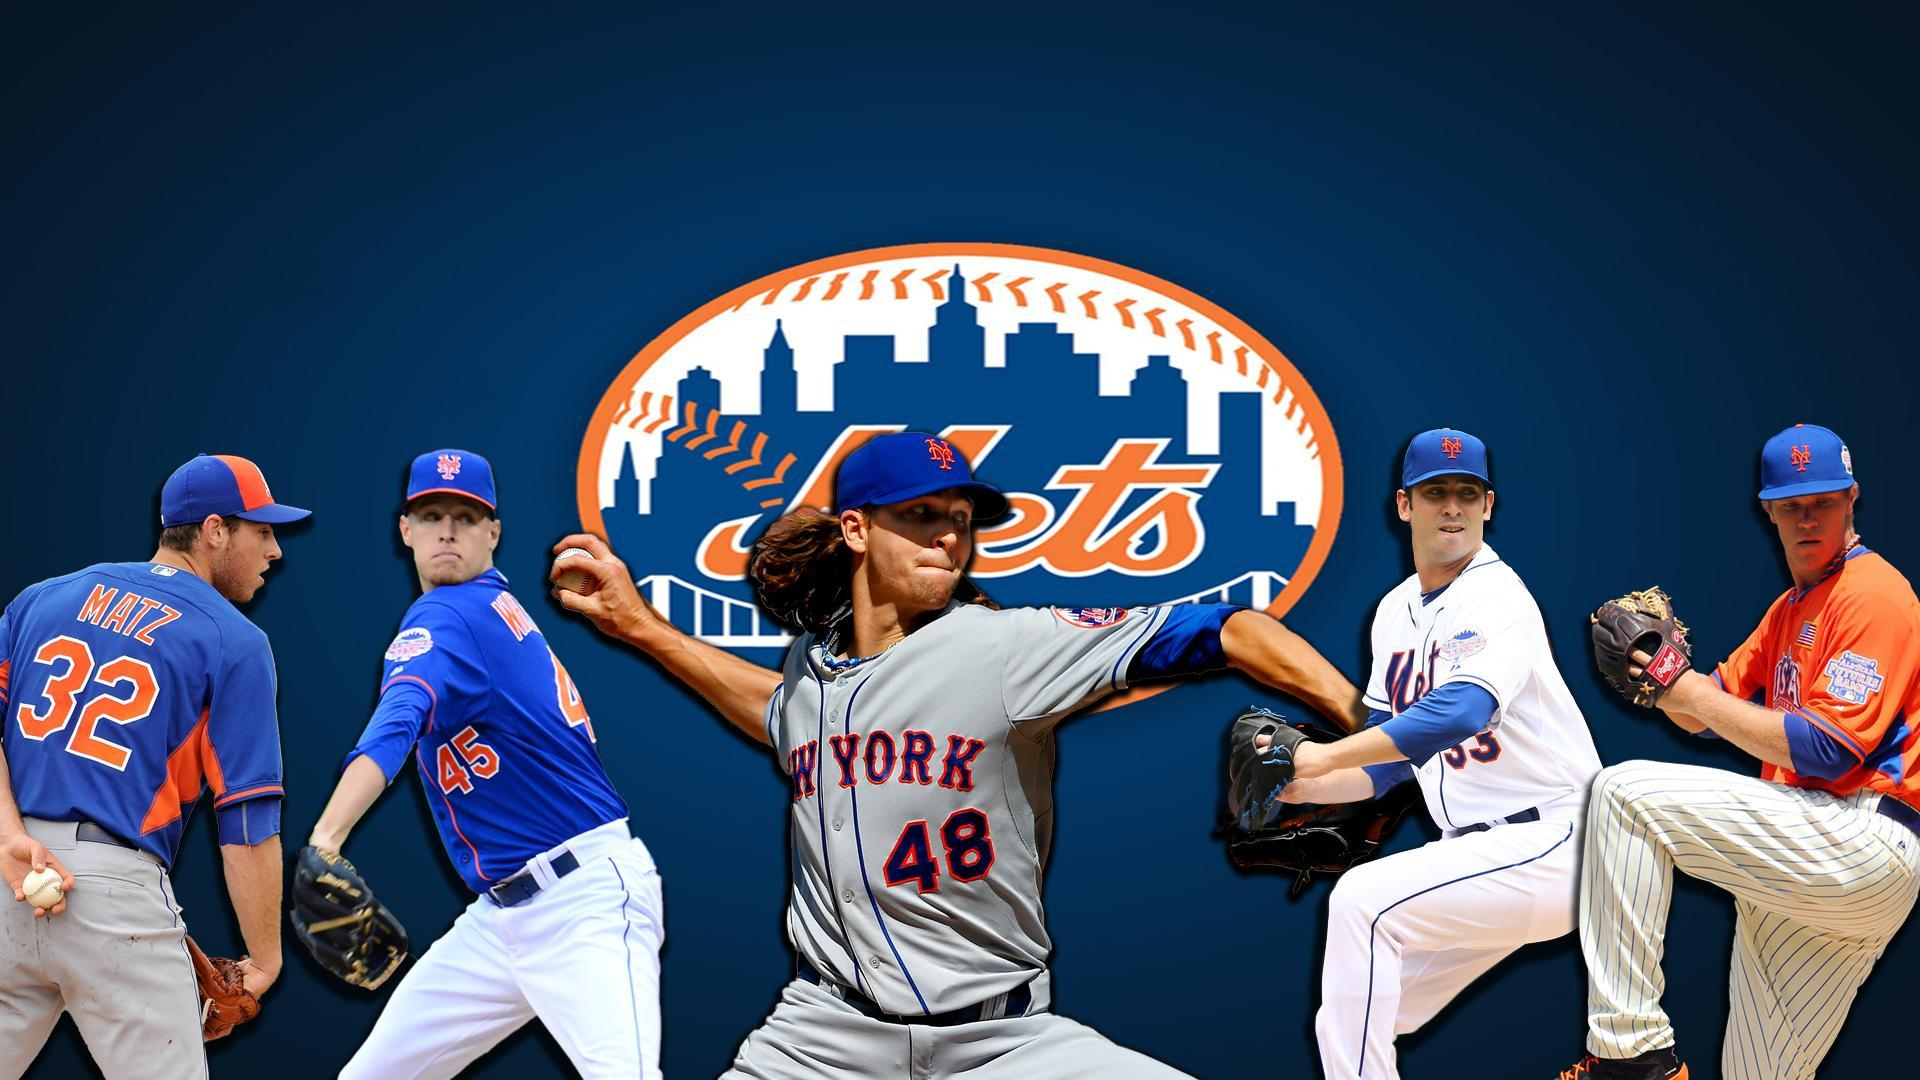 Mets Wallpapers : NewYorkMets